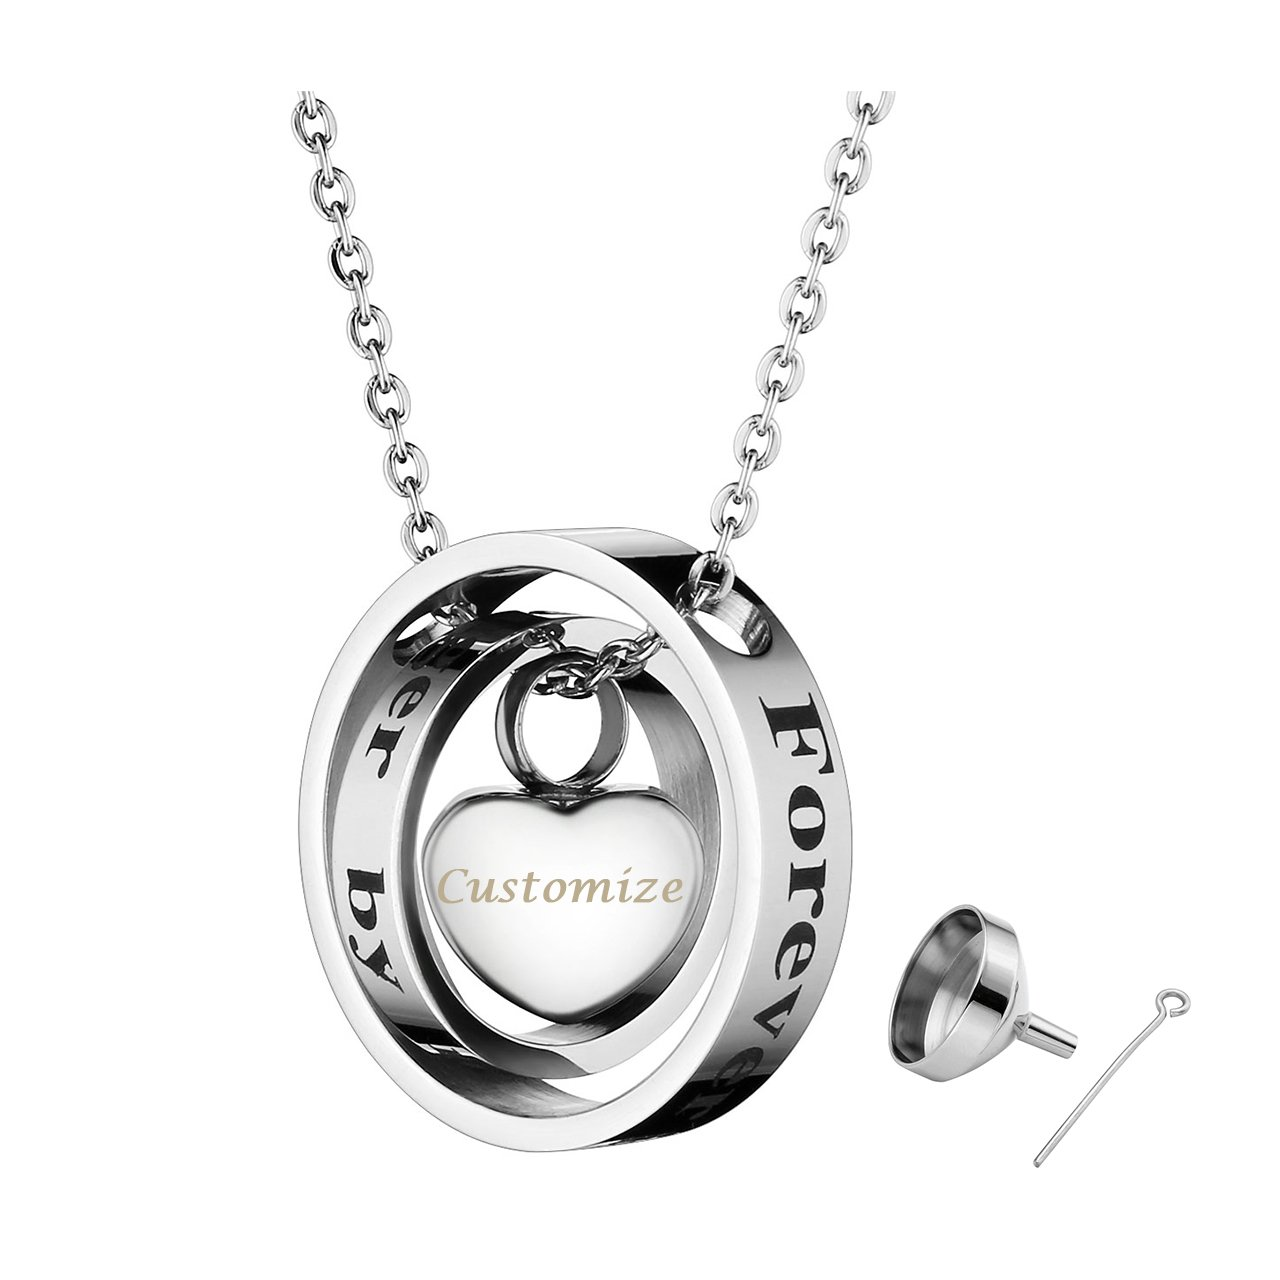 PiercingJ Personalized Custom Engraved Name Necklace Heart Shape Love Memorial Urn Pendant Ash Cremation Jewelry Holder Container Keepsake Necklace with Chain Funnel Fill Kit